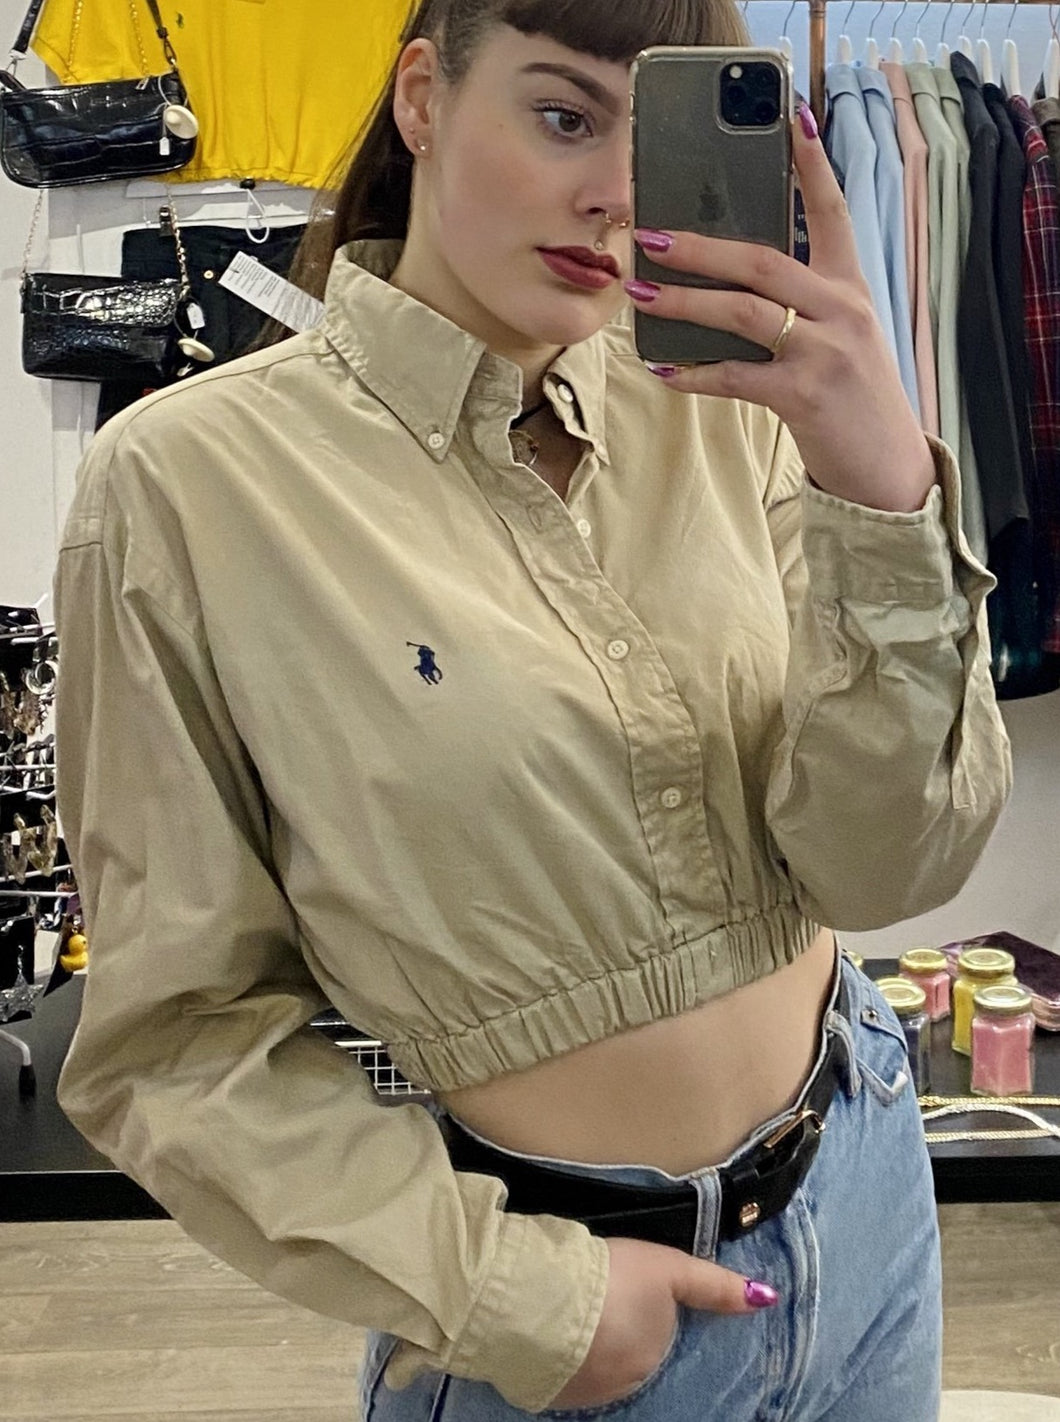 Vintage 90s Reworked Ralph Lauren Crop Top Shirt in Beige Khaki in S/M